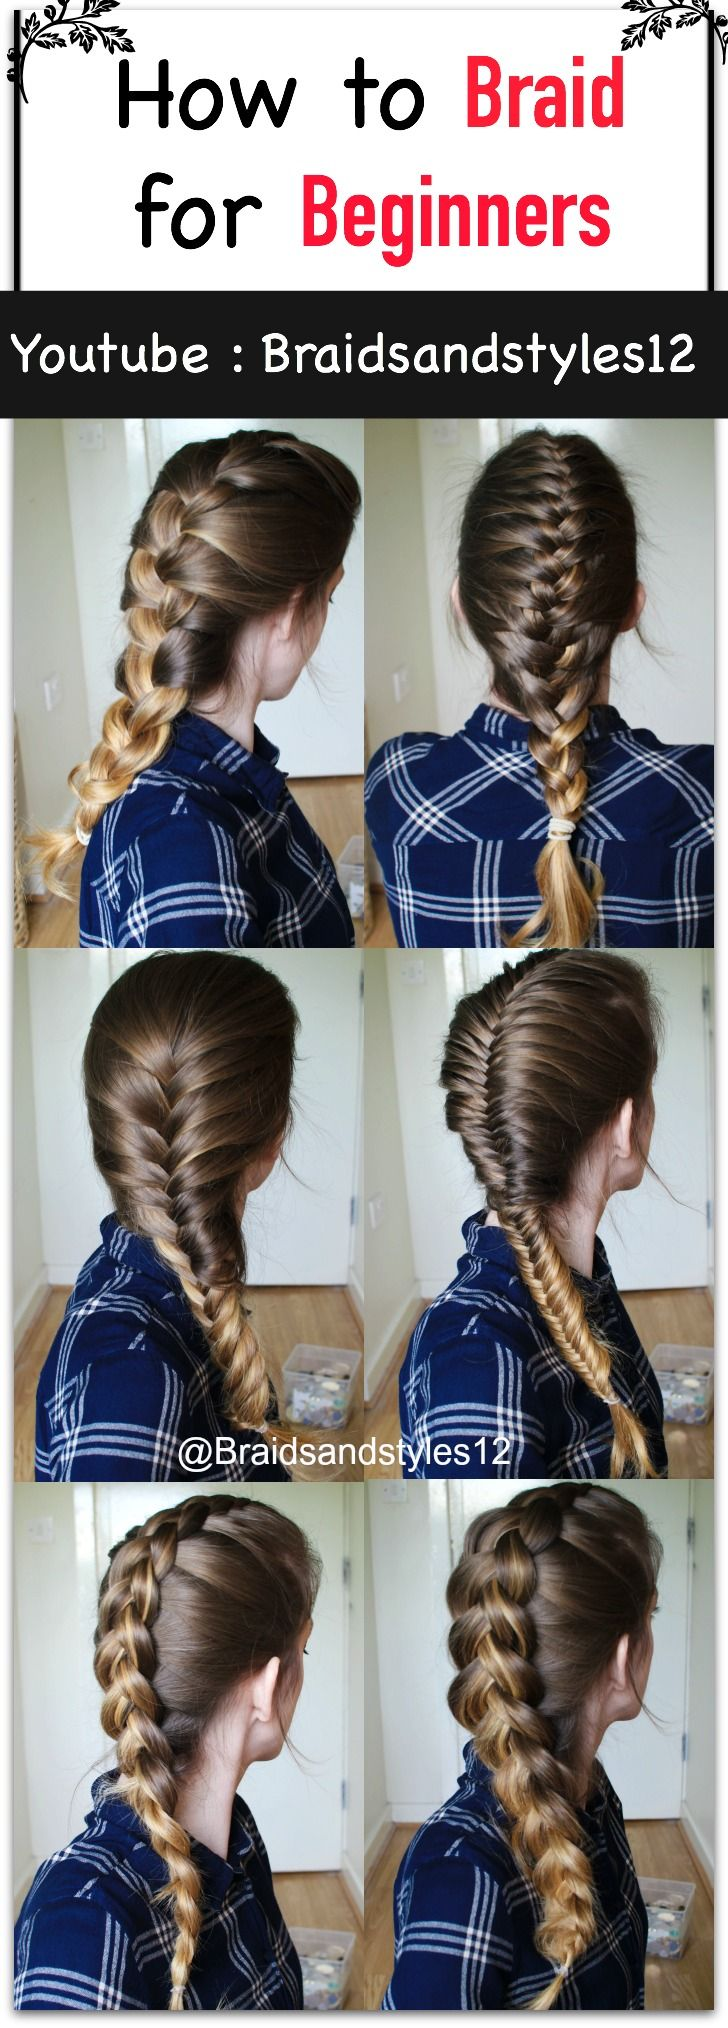 How to Braid your Own Hair for Beginners by Braidsandstyles12. Click the  below or the pin for a tutorial! :)   Youtube Tutorial : https://www.youtube.com/watch?v=mo2PpLvCqZA